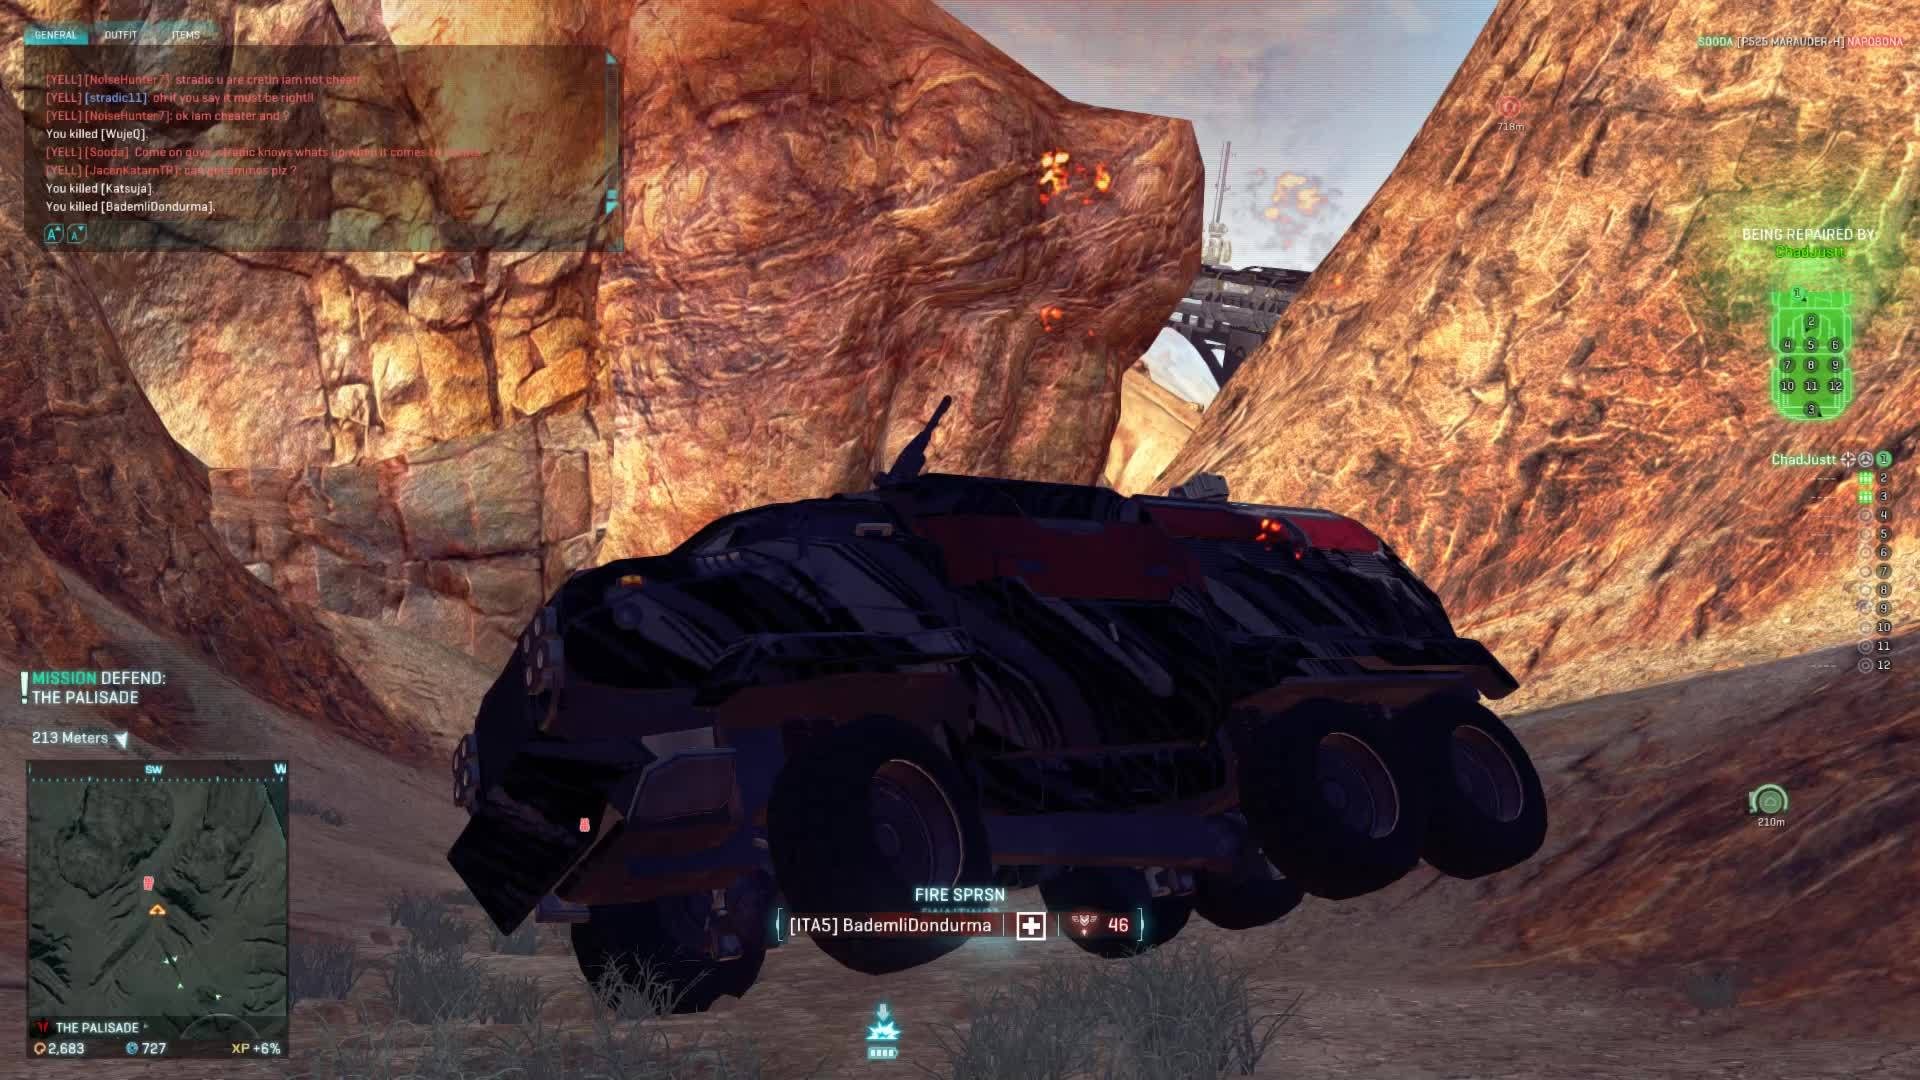 planetside, ps2cobalt, almost GIFs